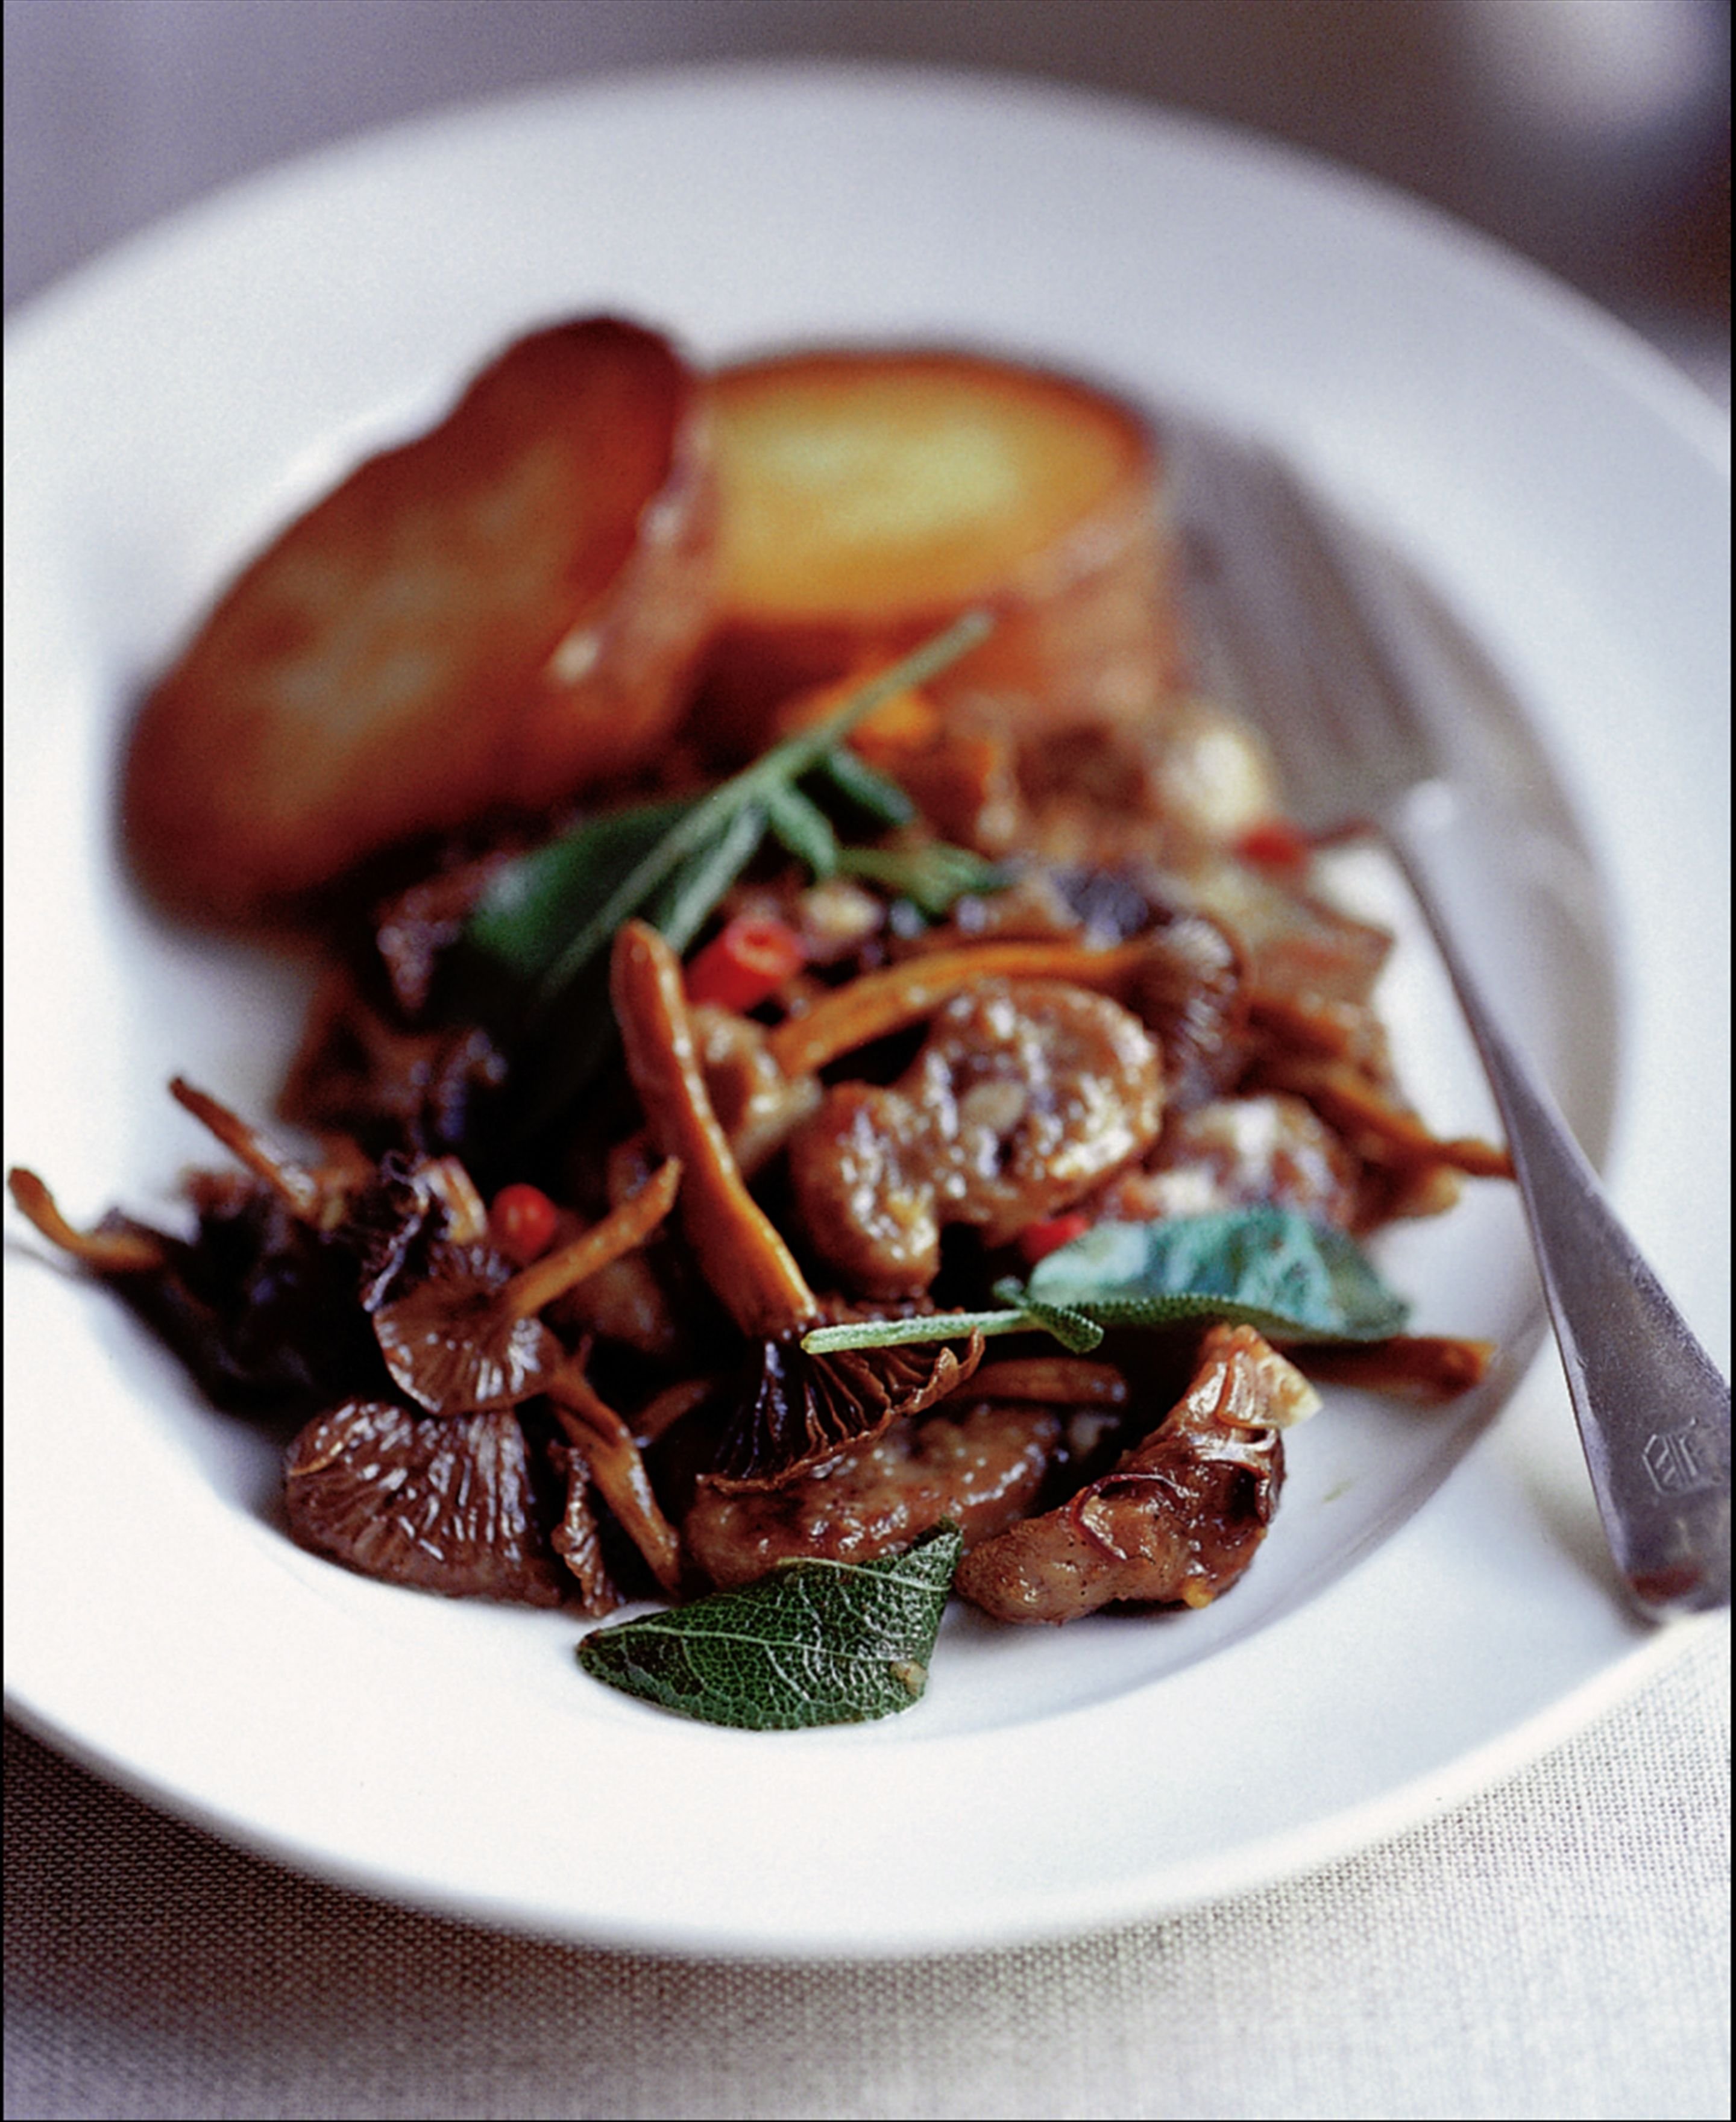 Devilled kidneys with winter chanterelles